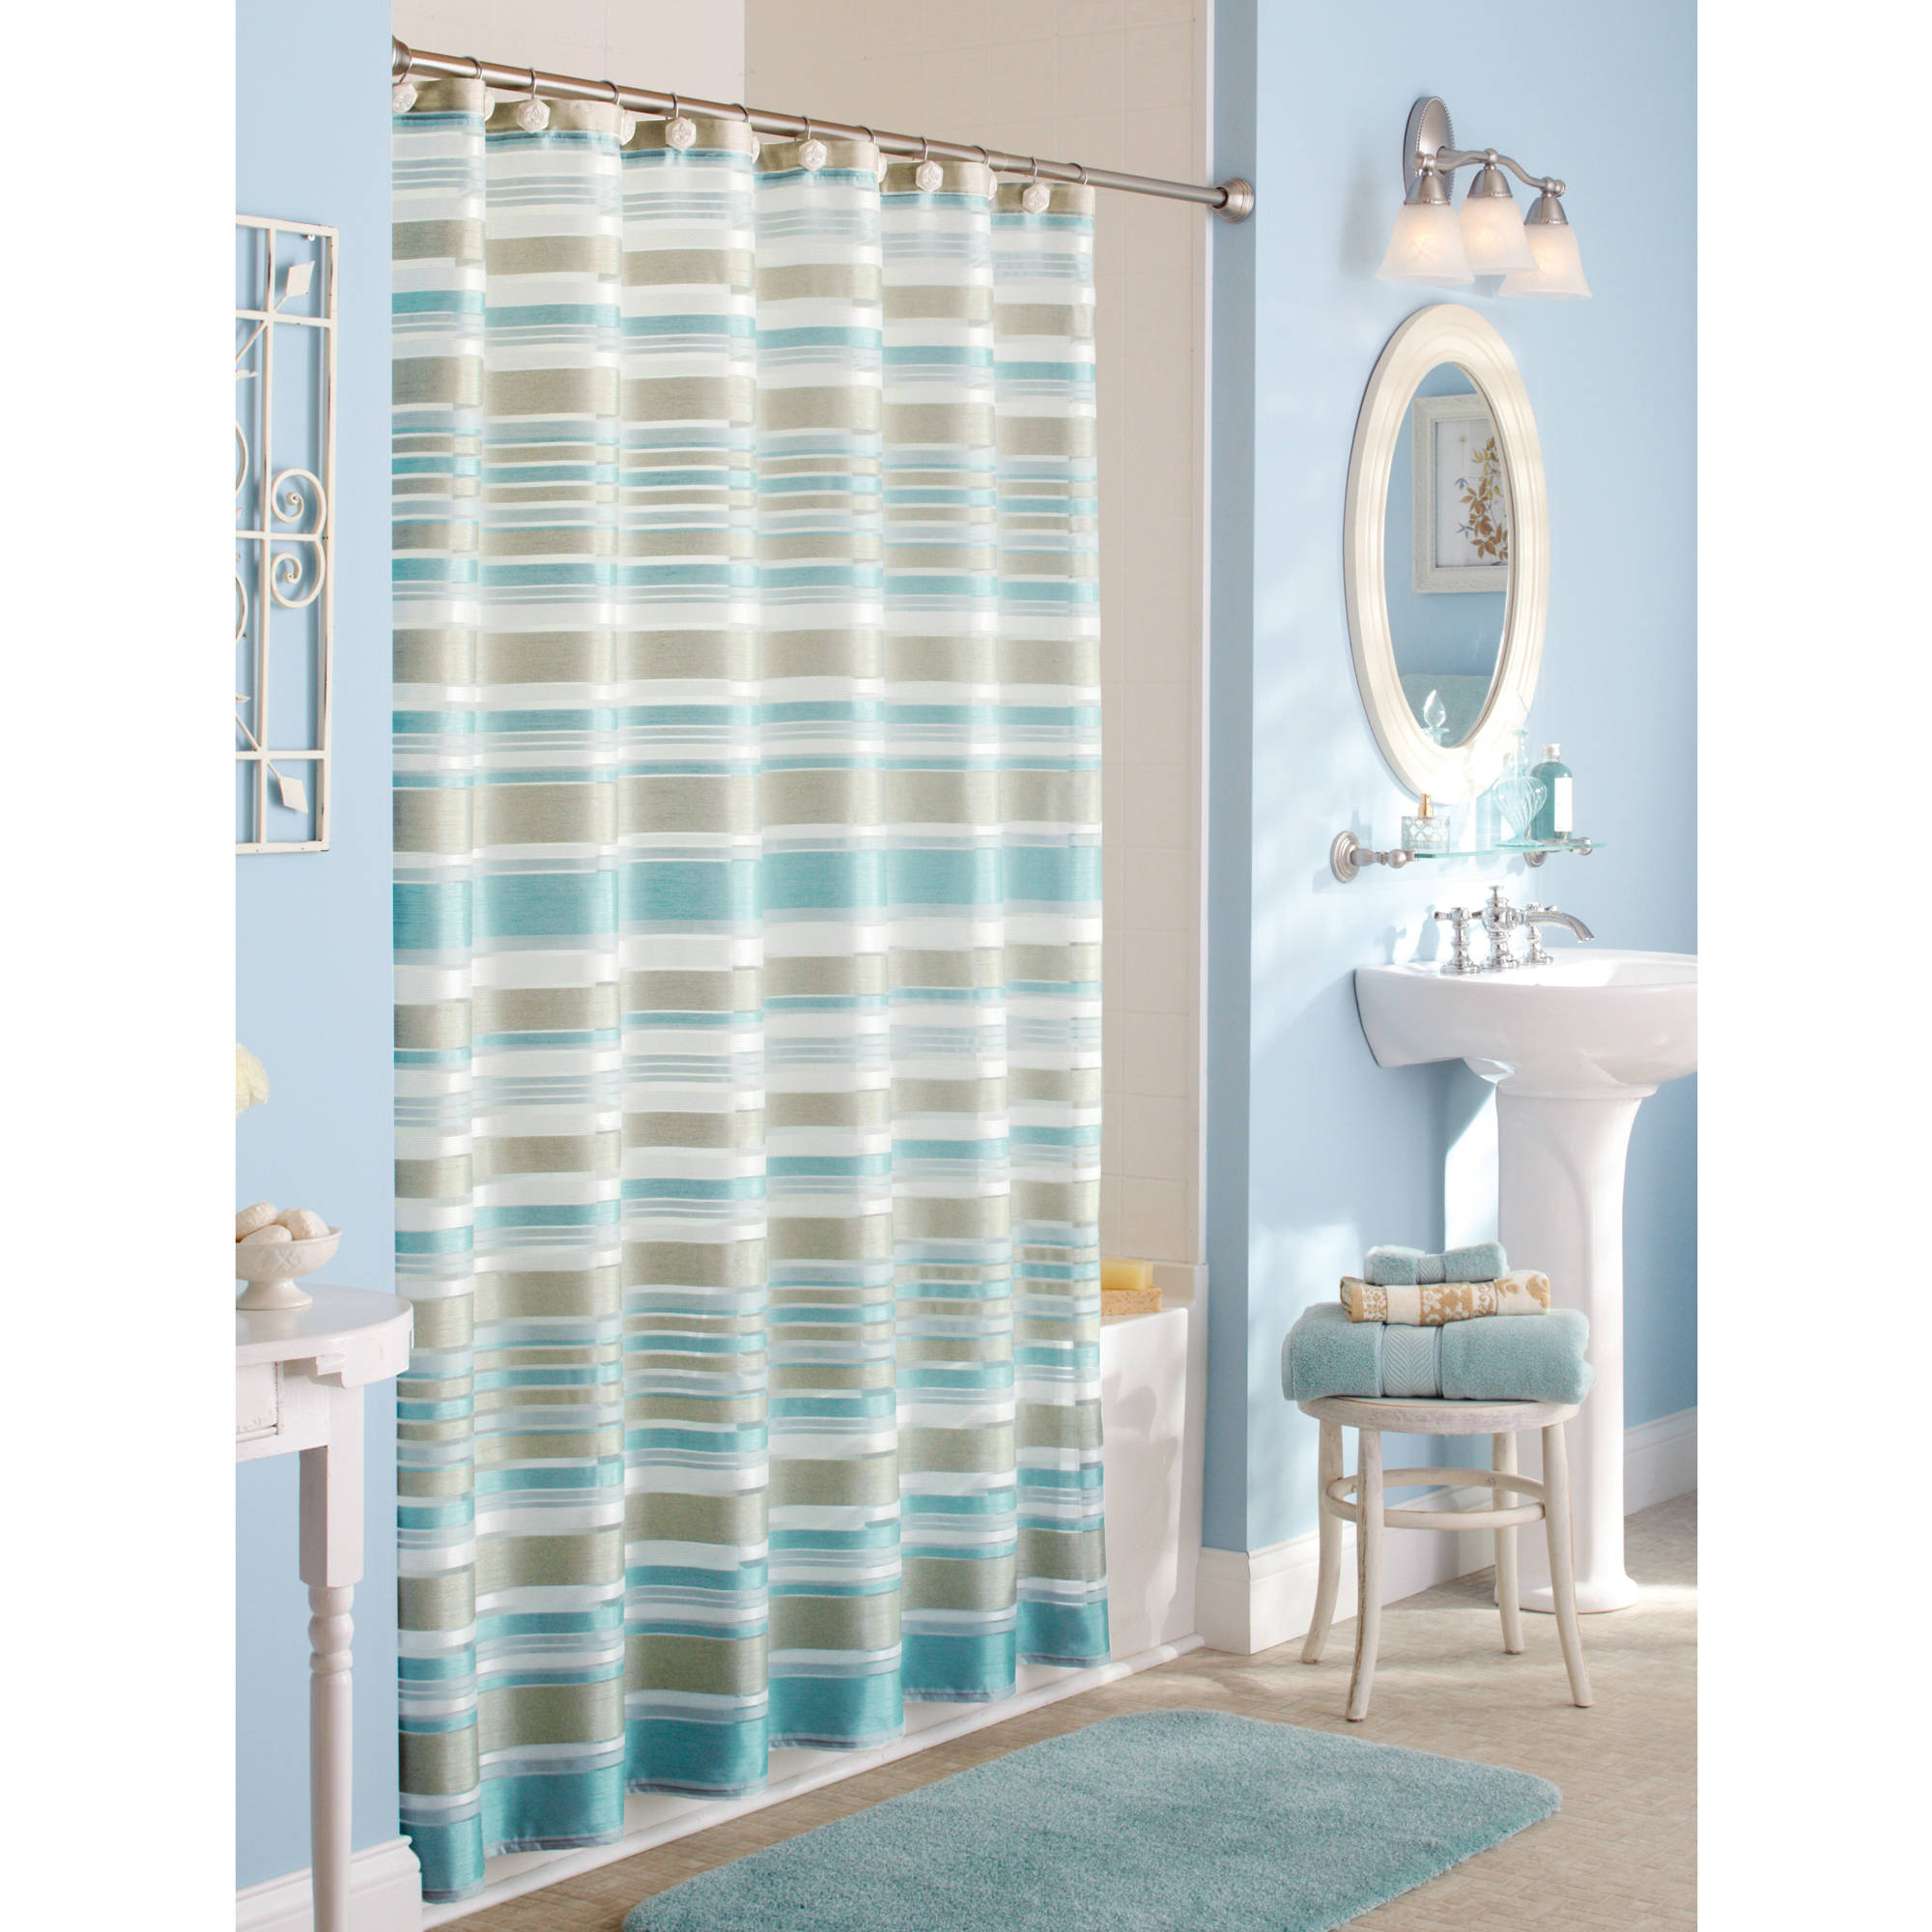 InterDesign Ombre Fabric Shower Curtain, Various Colors   Walmart.com